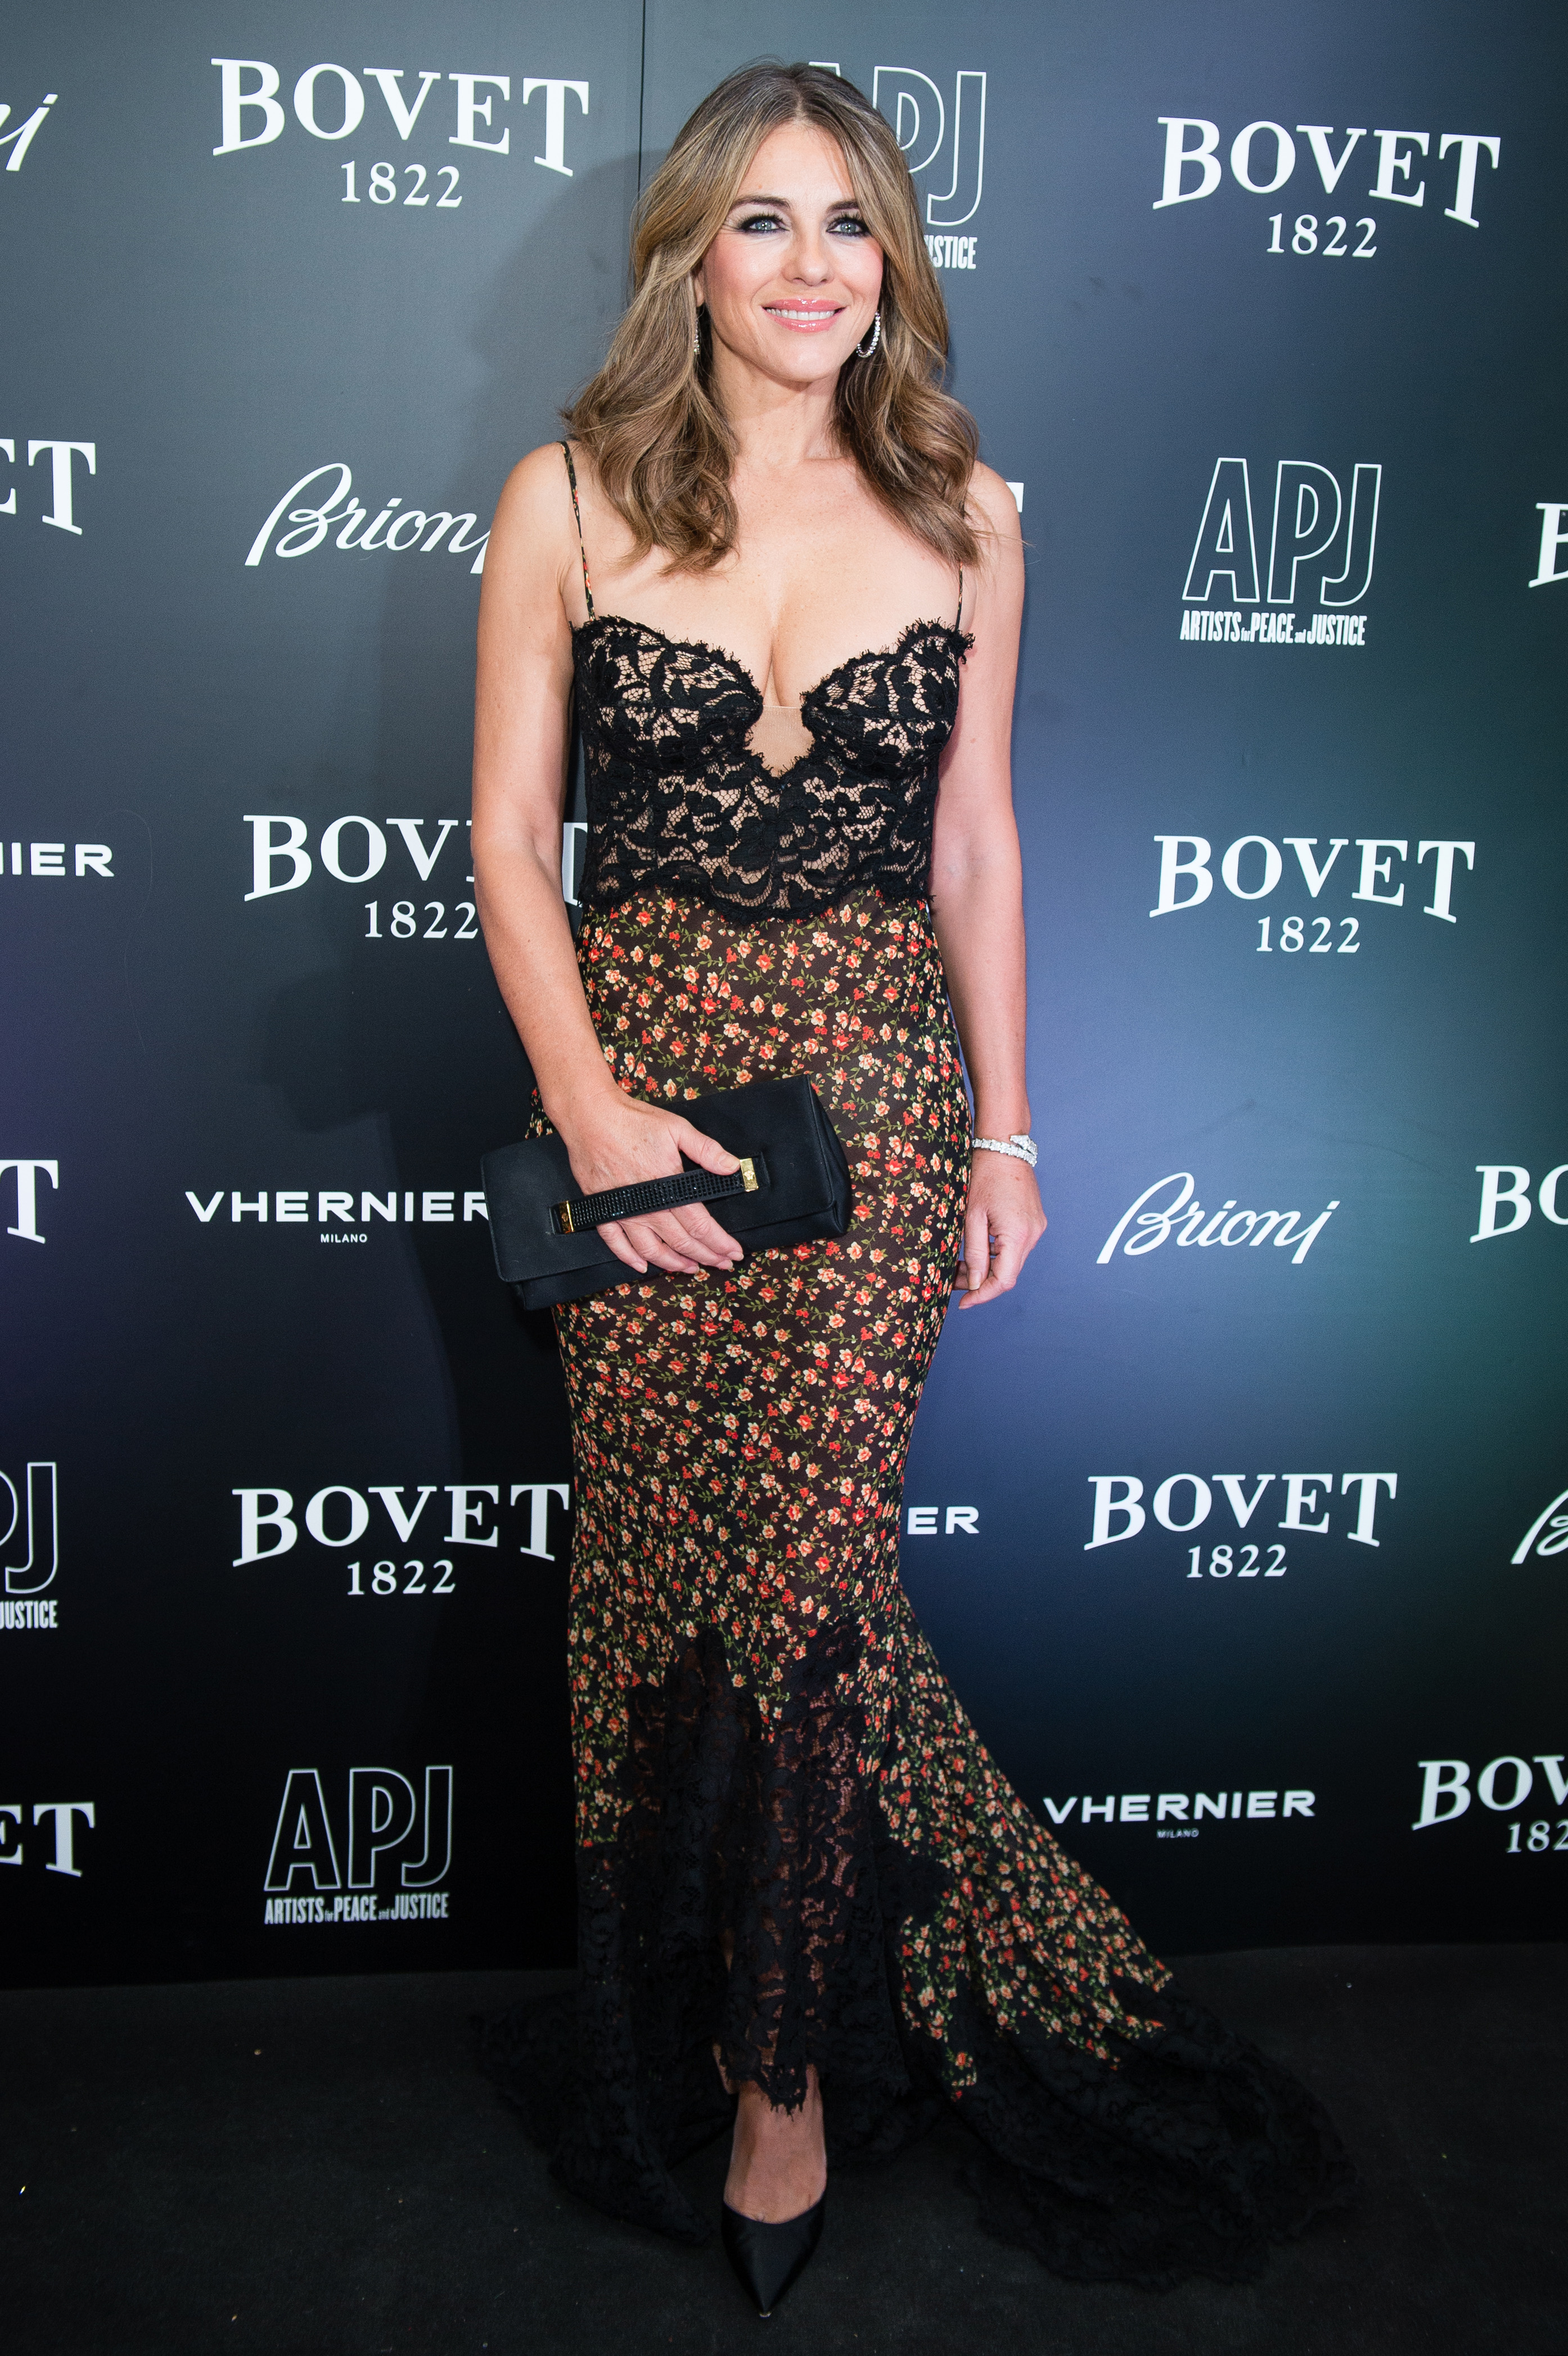 Elizabeth Hurley attends the 'Brilliant Is Beautiful' gala held at Claridge's Hotel on December 1, 2017 in London, England.